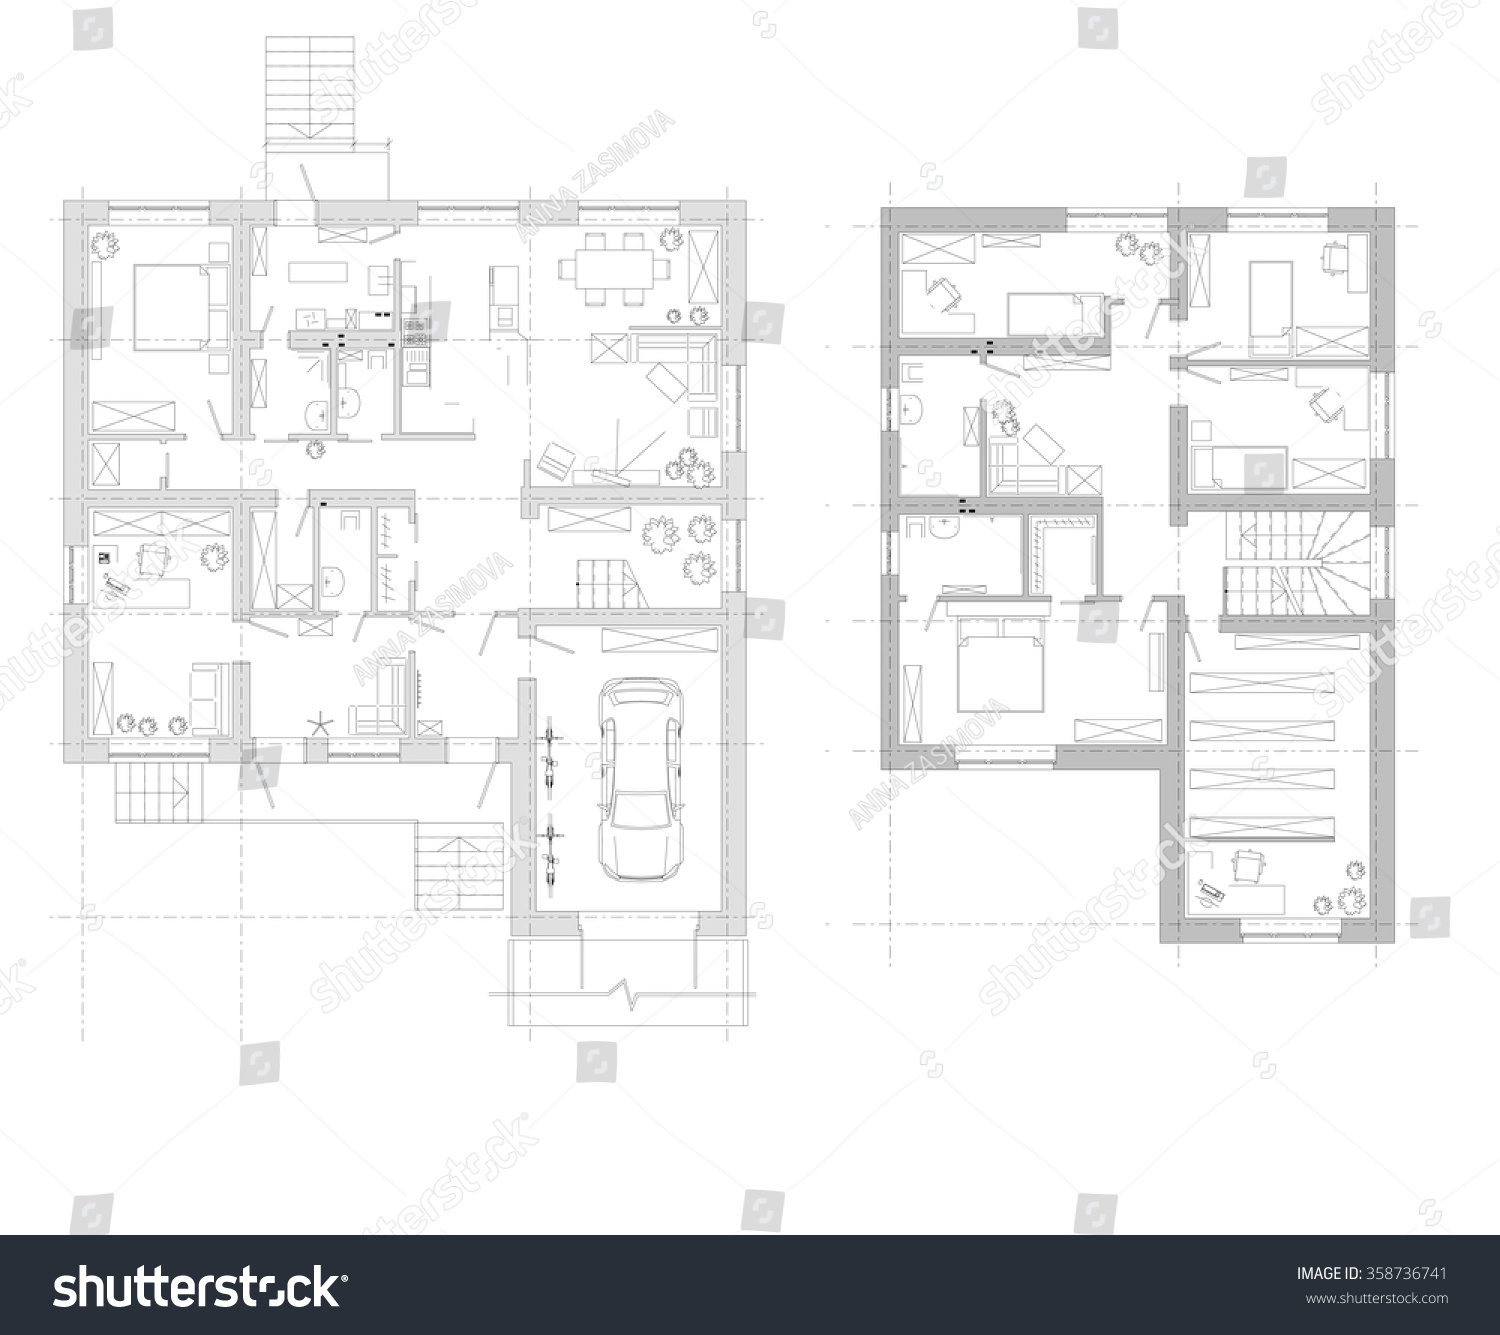 An example of the arrangement of furniture. plan two-